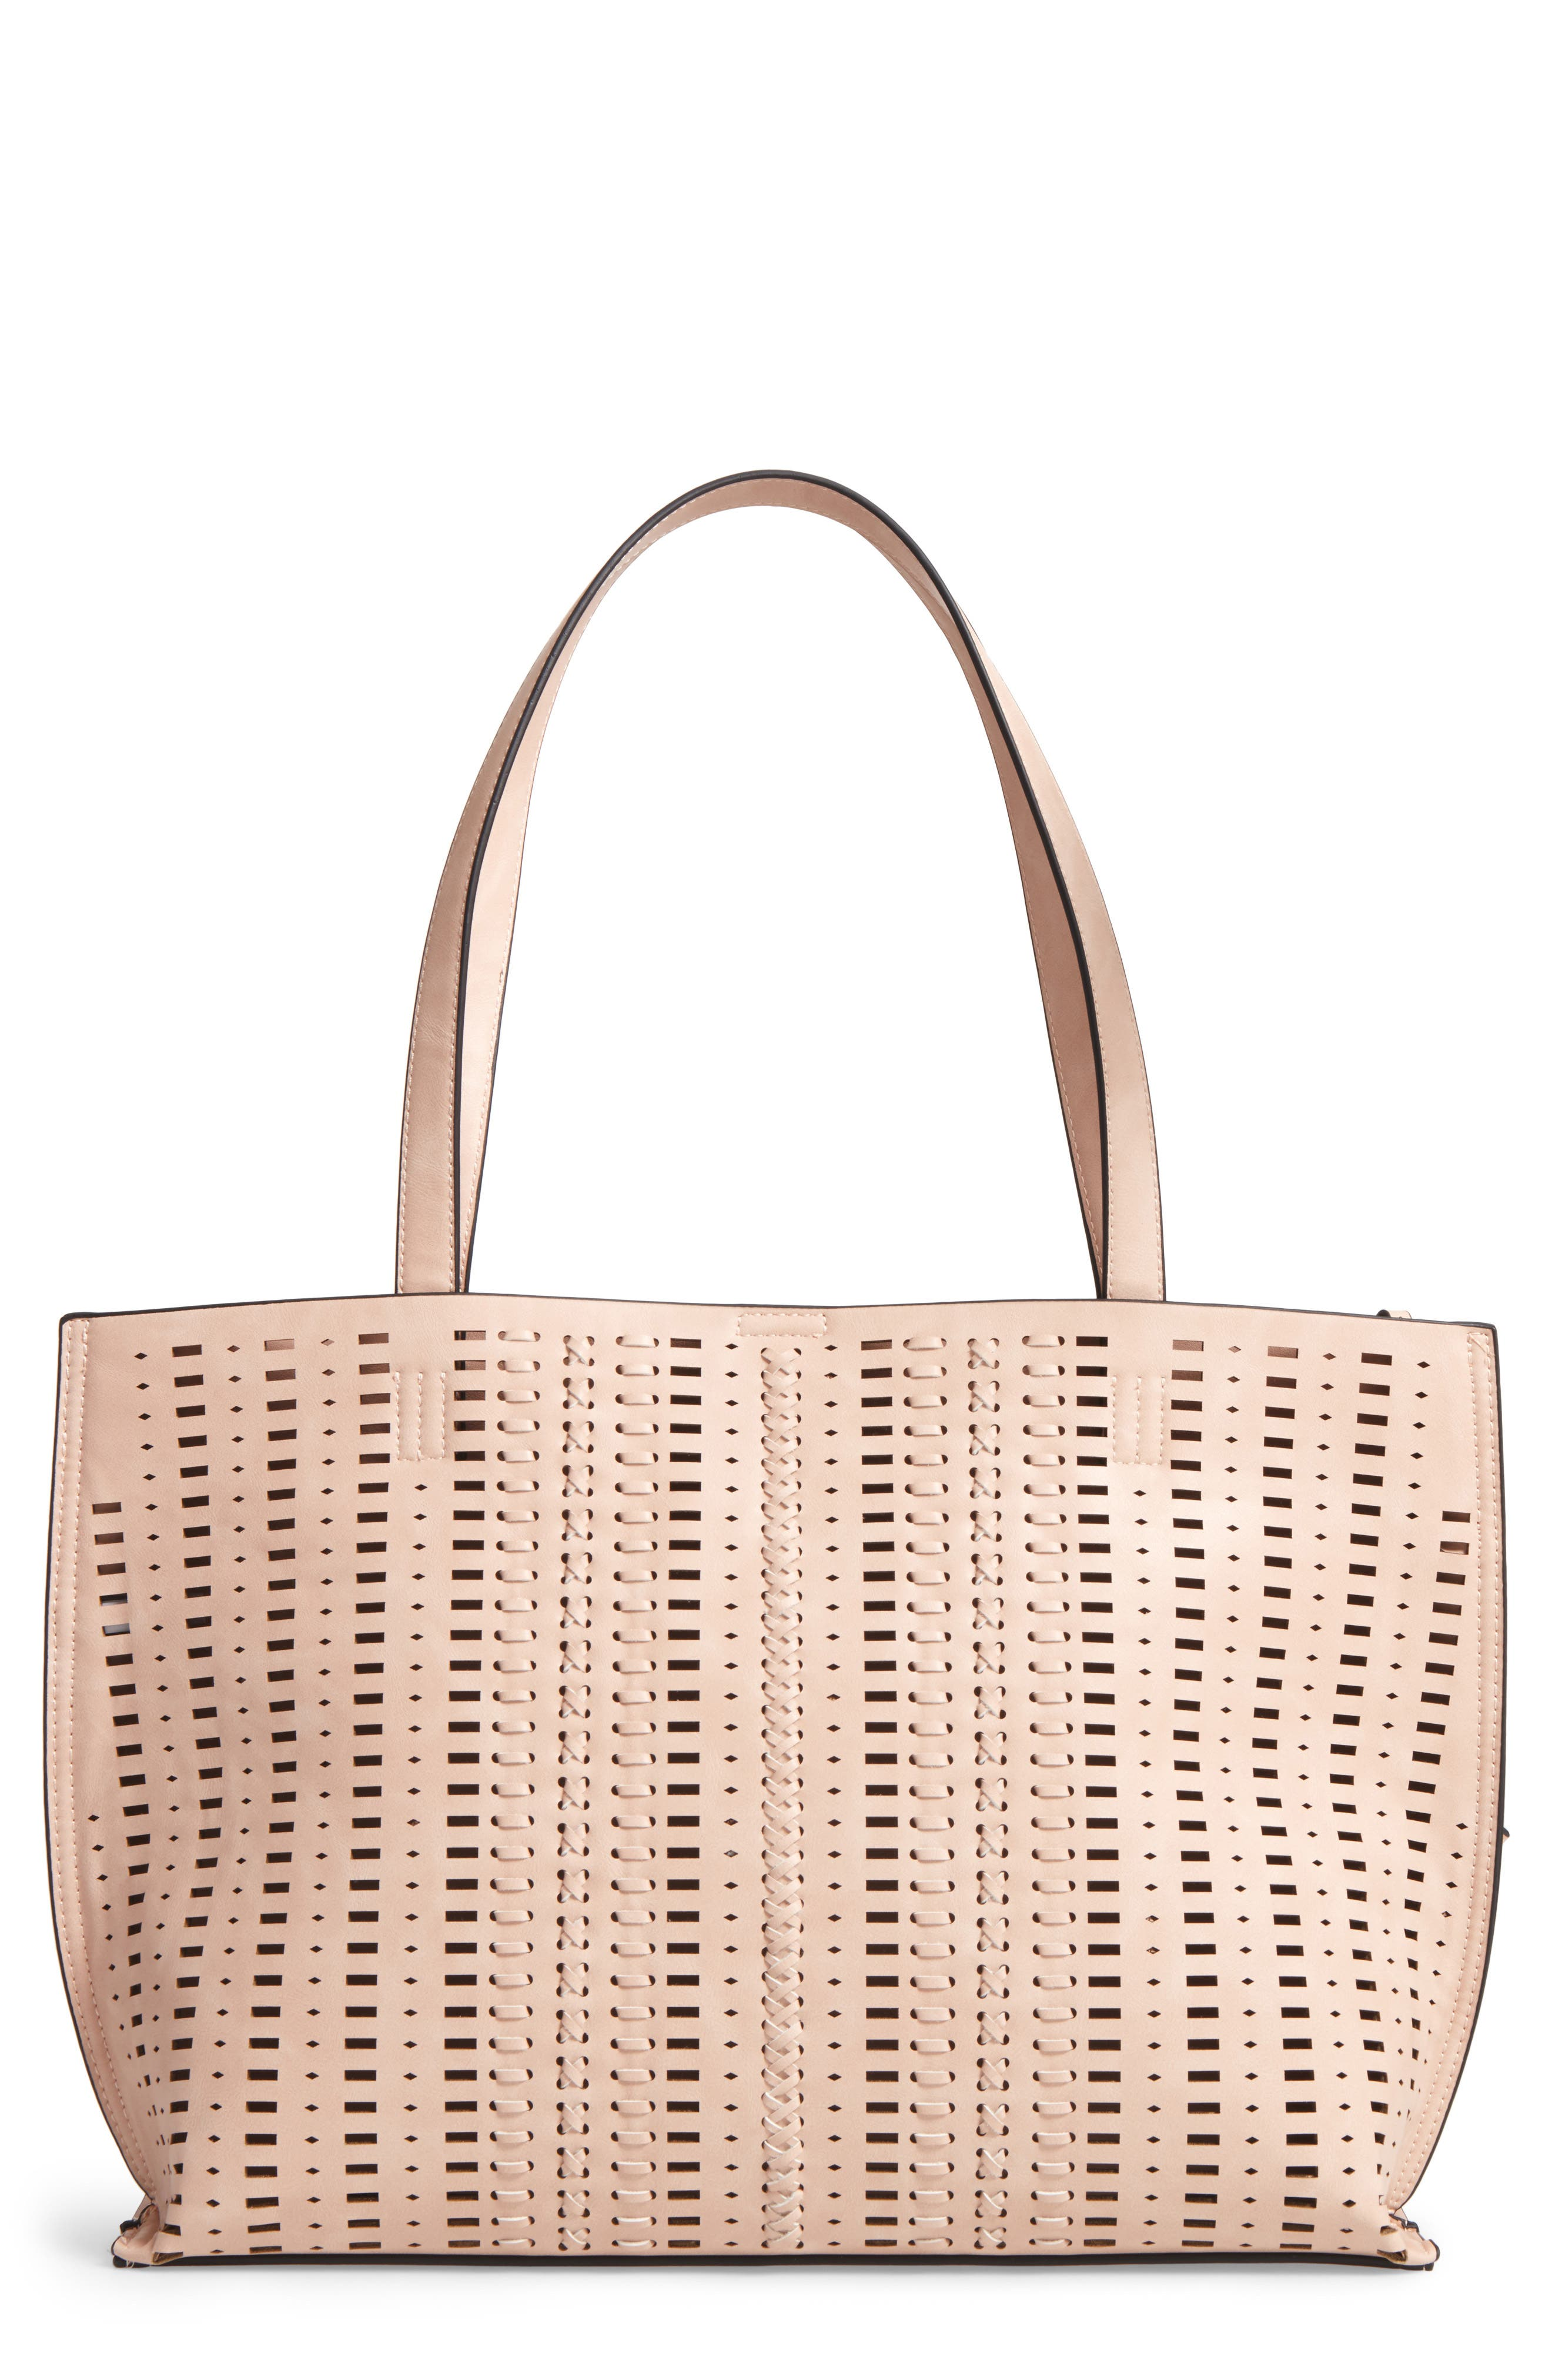 PHASE 3 Woven Faux Leather Tote